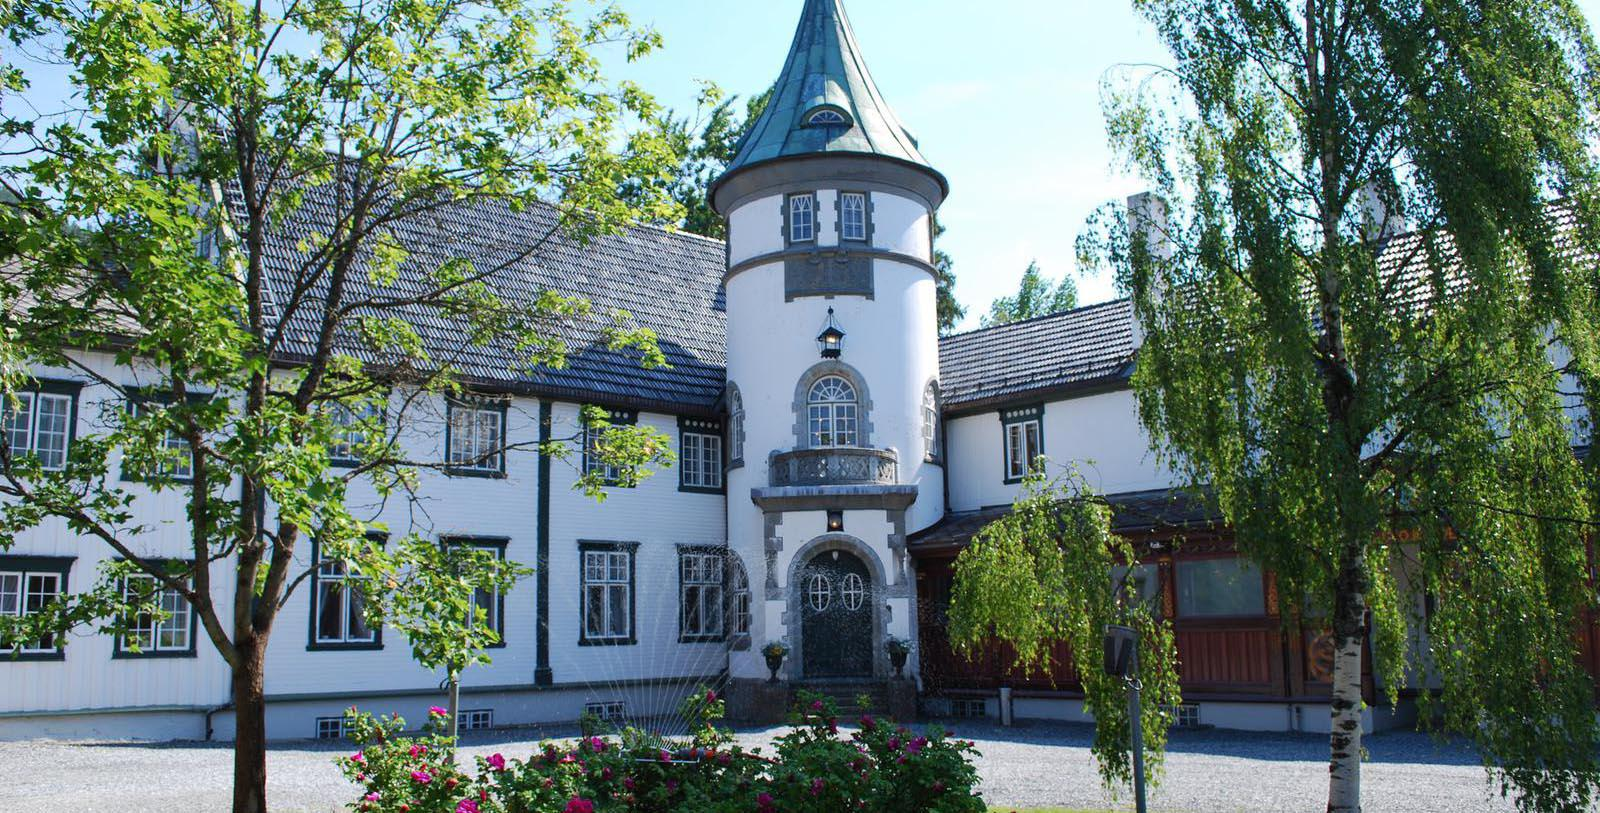 Image of hotel exterior Bårdshaug Herregård, 1890, Member of Historic Hotels Worldwide, in Orkanger, Norway, Special Offers, Discounted Rates, Families, Romantic Escape, Honeymoons, Anniversaries, Reunions